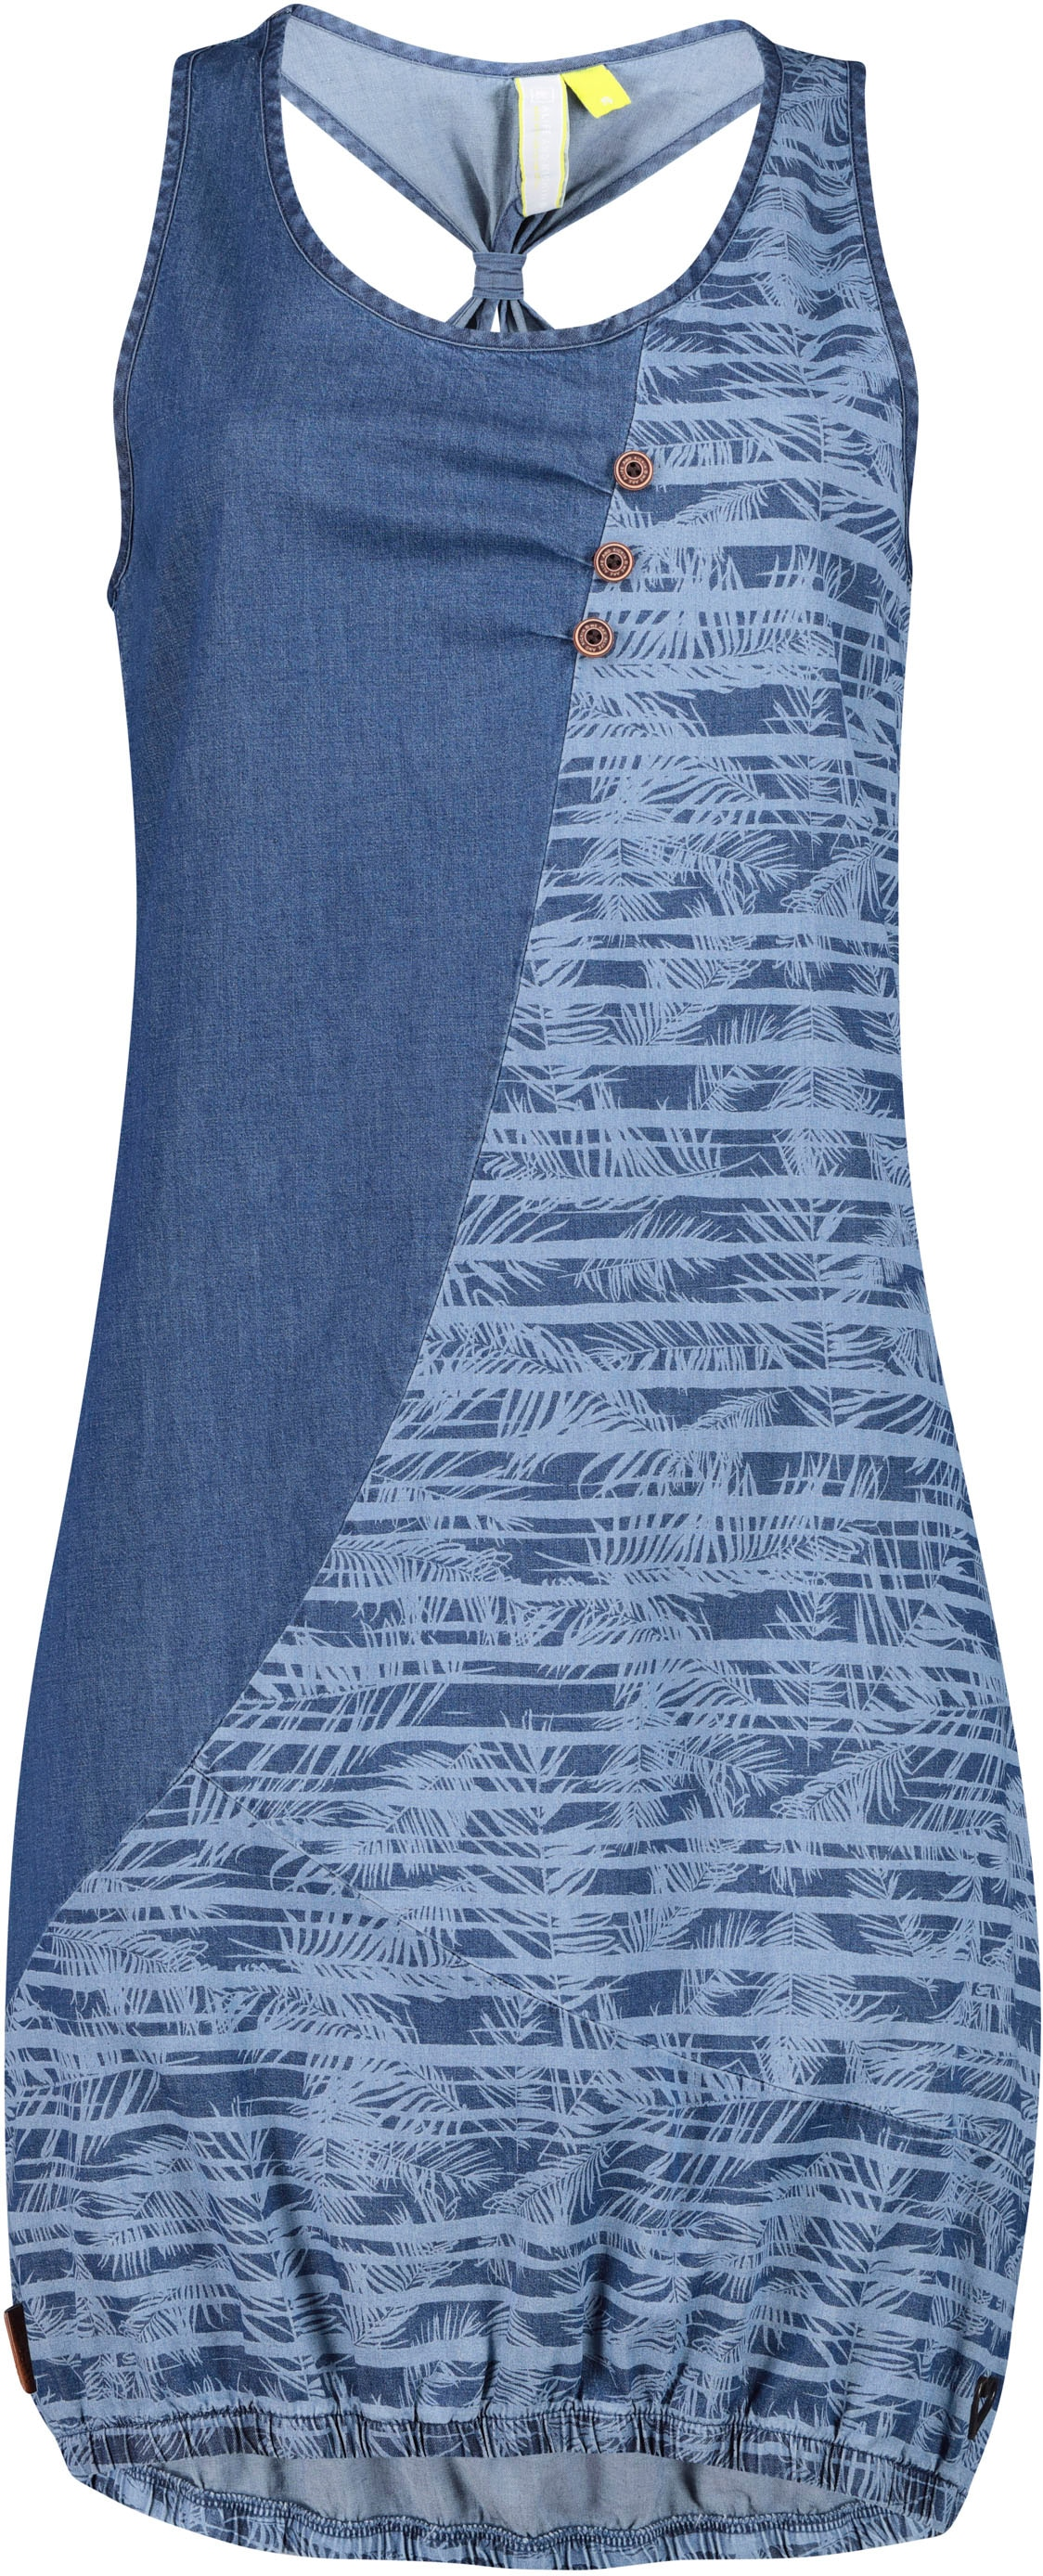 Image of Alife & Kickin Jeanskleid »CameronAK D«, süsses Kleid im Denim-Look mit Print